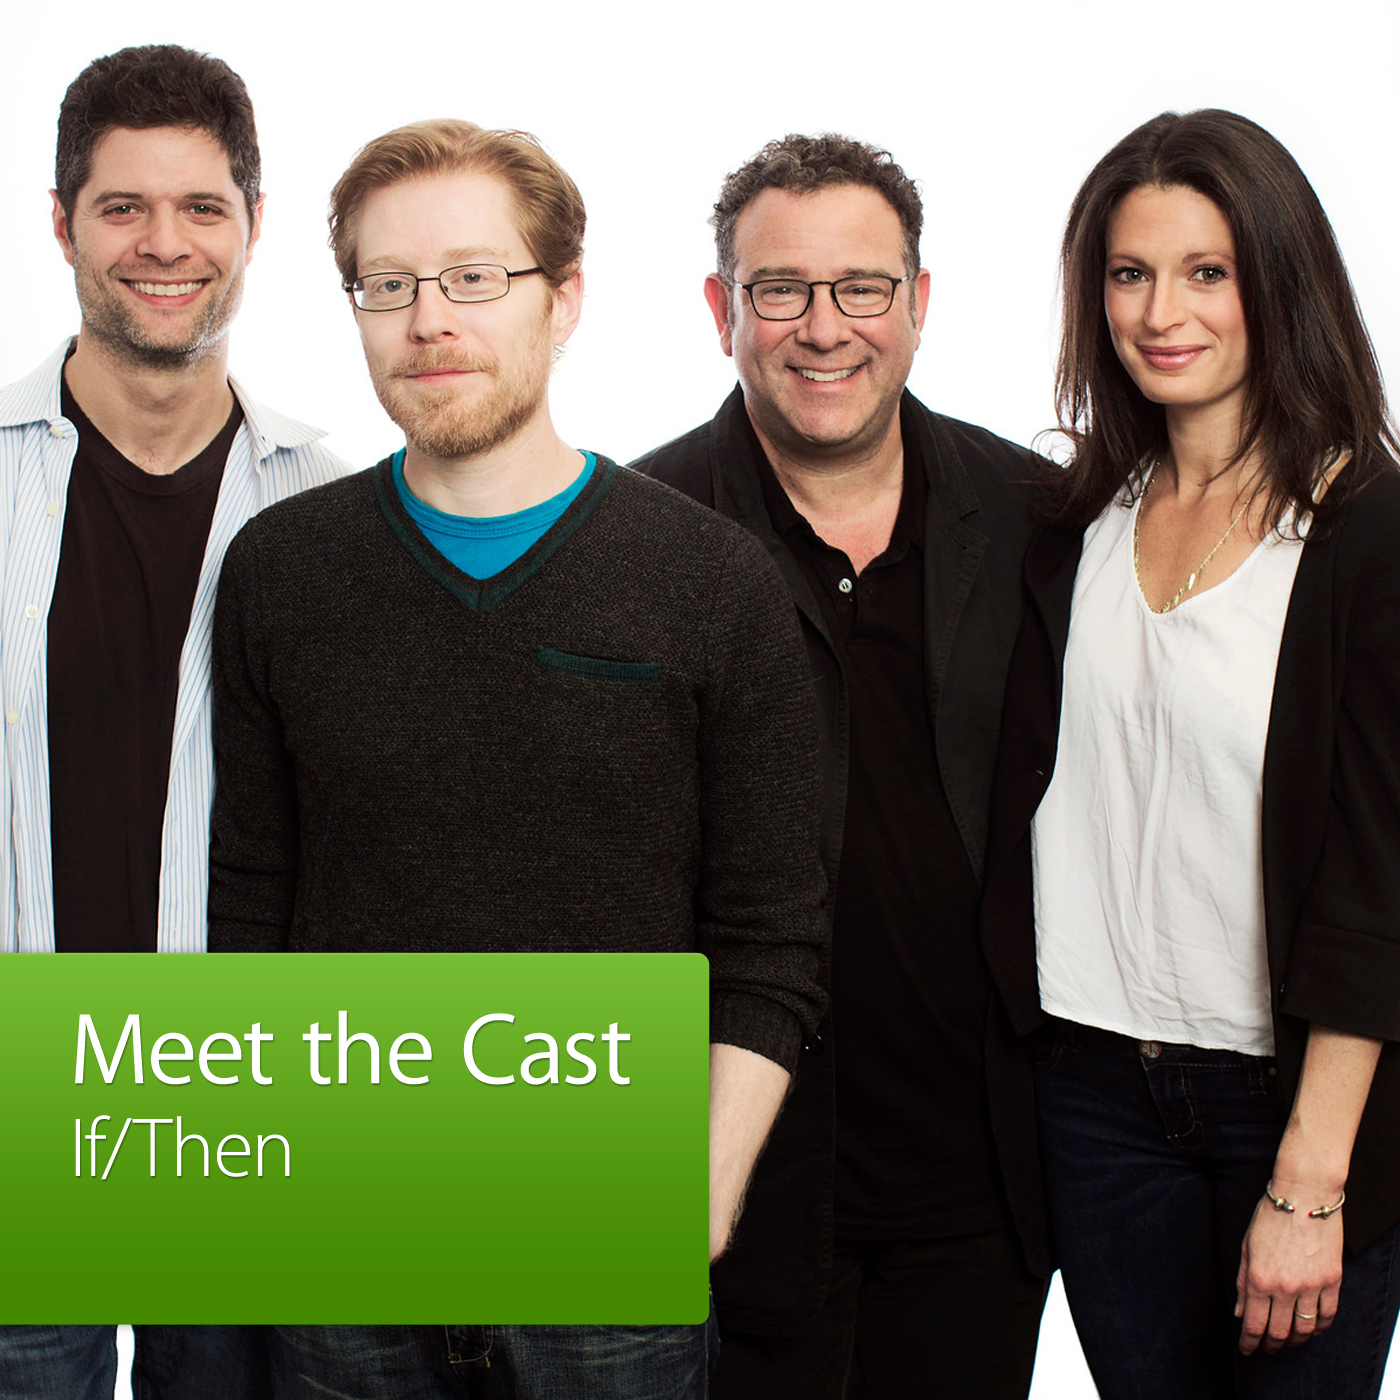 If/Then: Meet the Cast